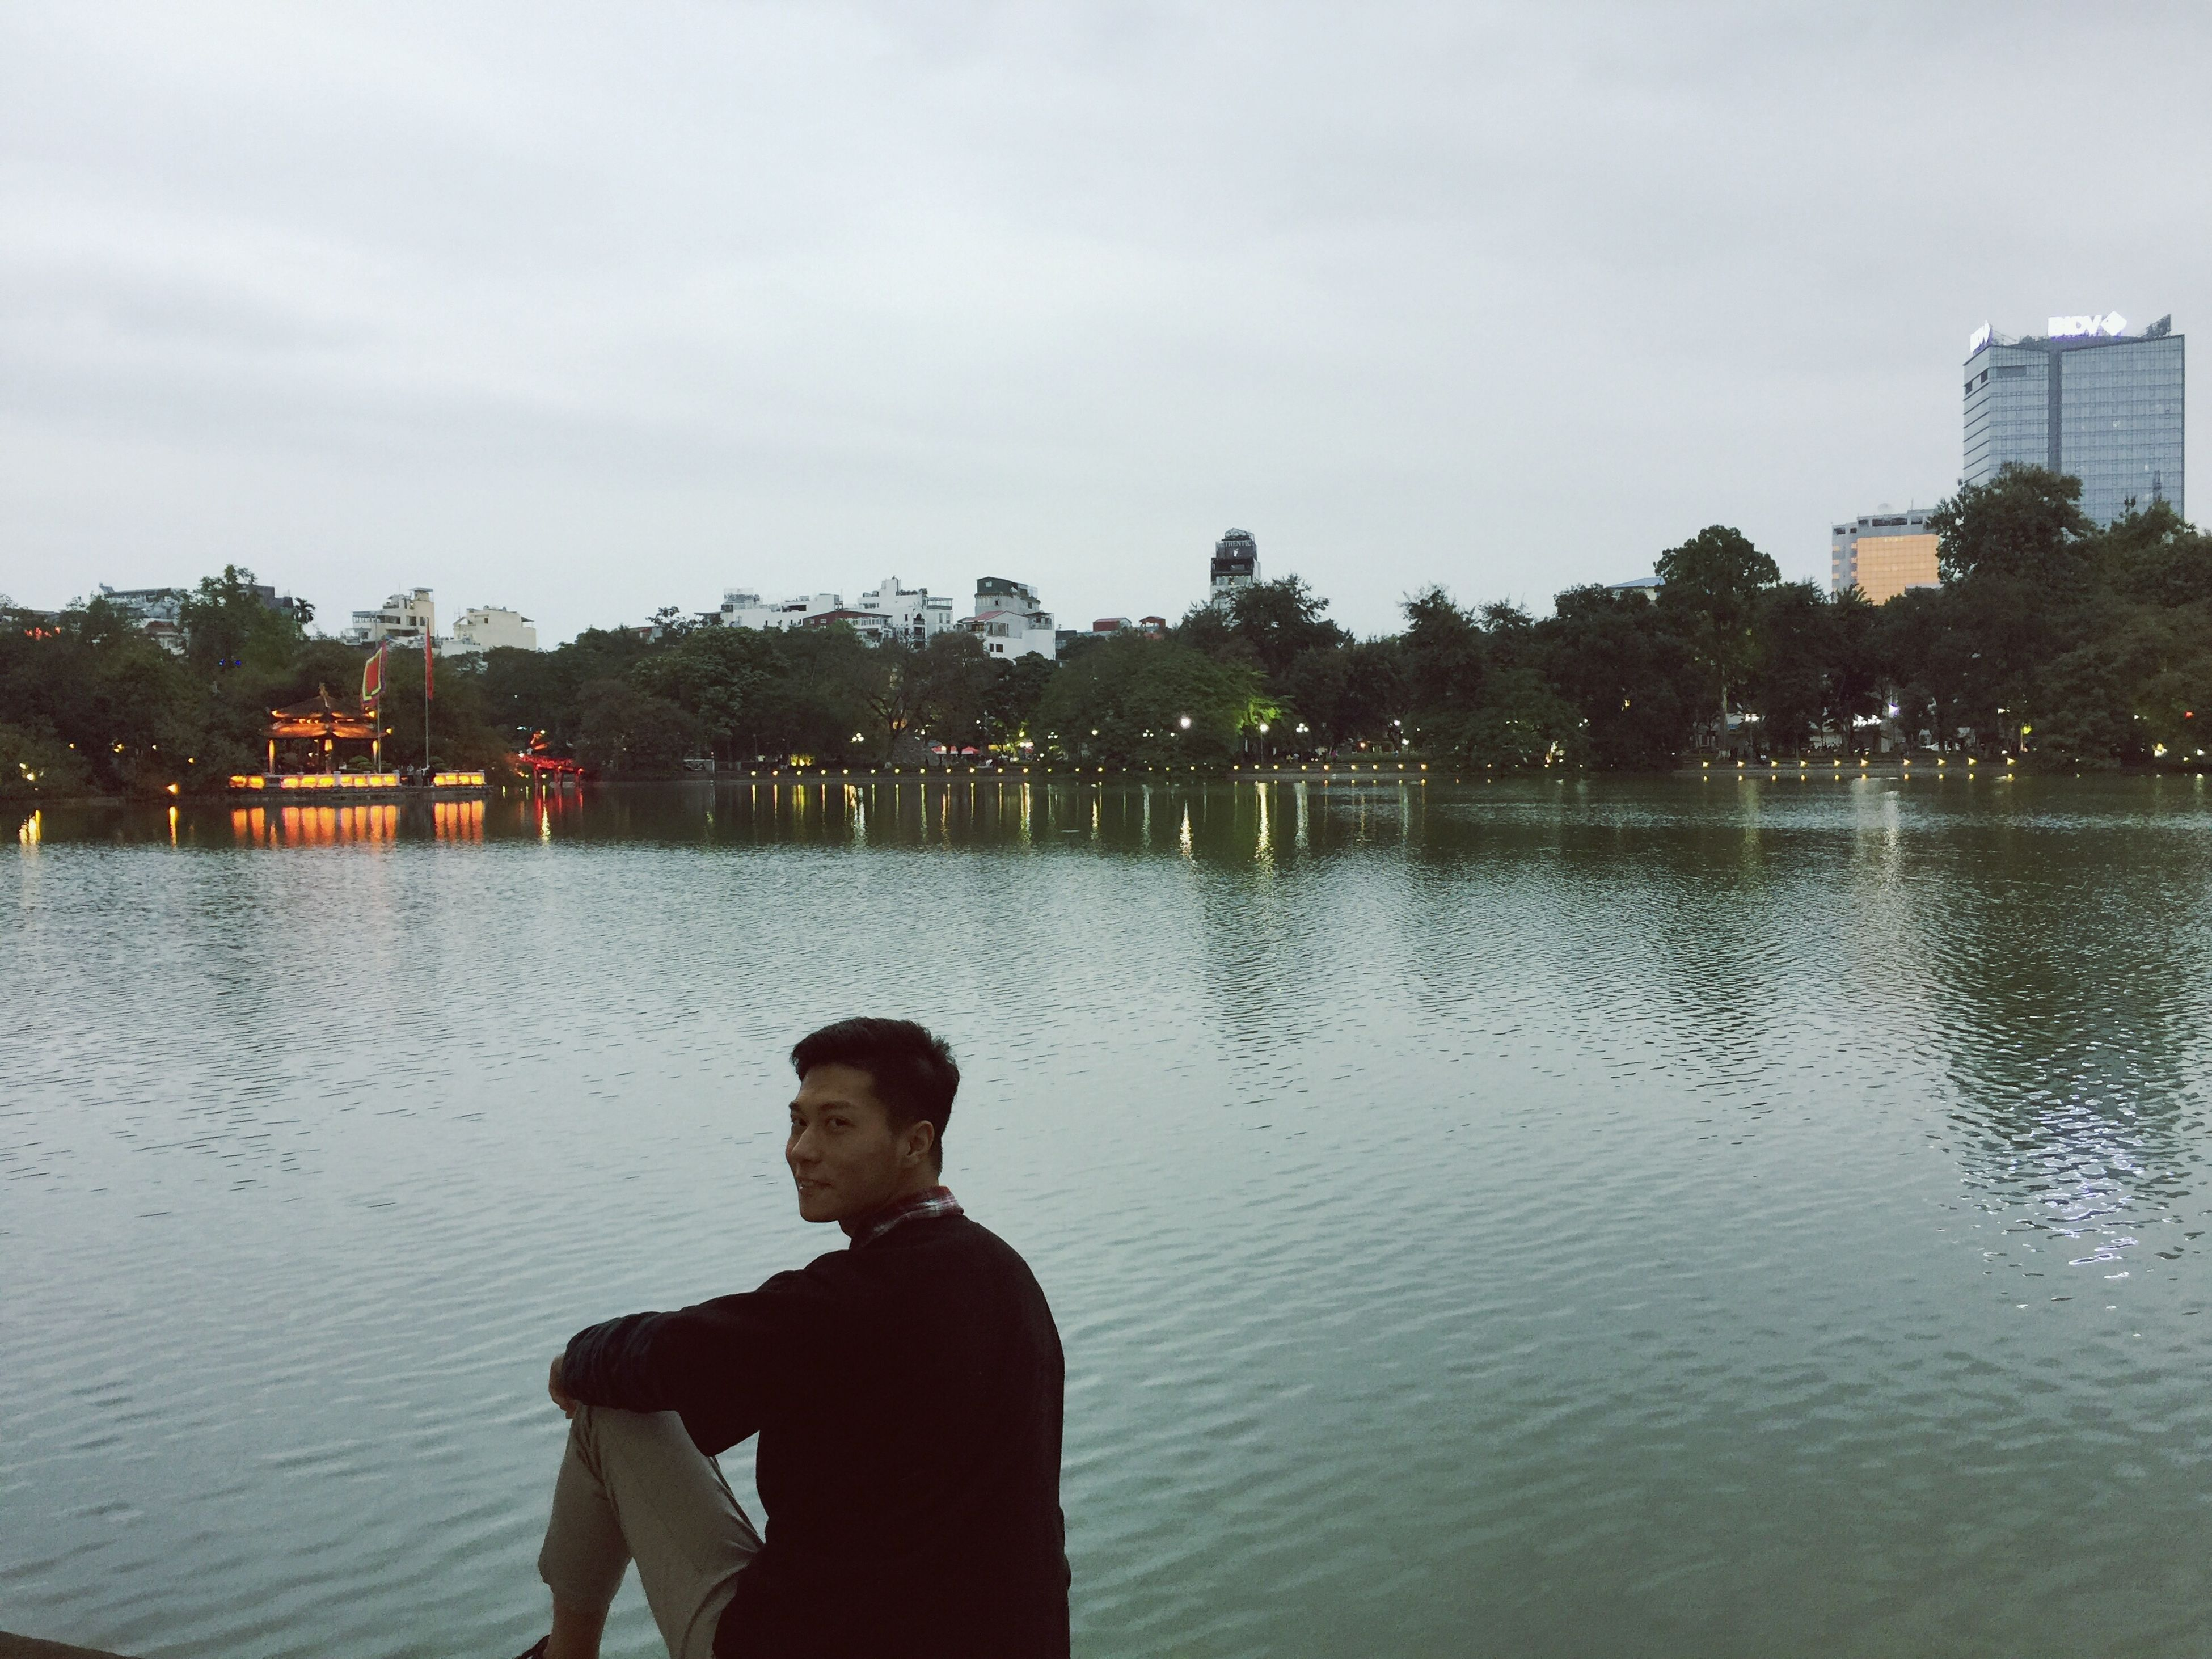 water, one person, reflection, real people, sky, young adult, cloud - sky, outdoors, men, nature, day, only men, one man only, architecture, people, adults only, adult